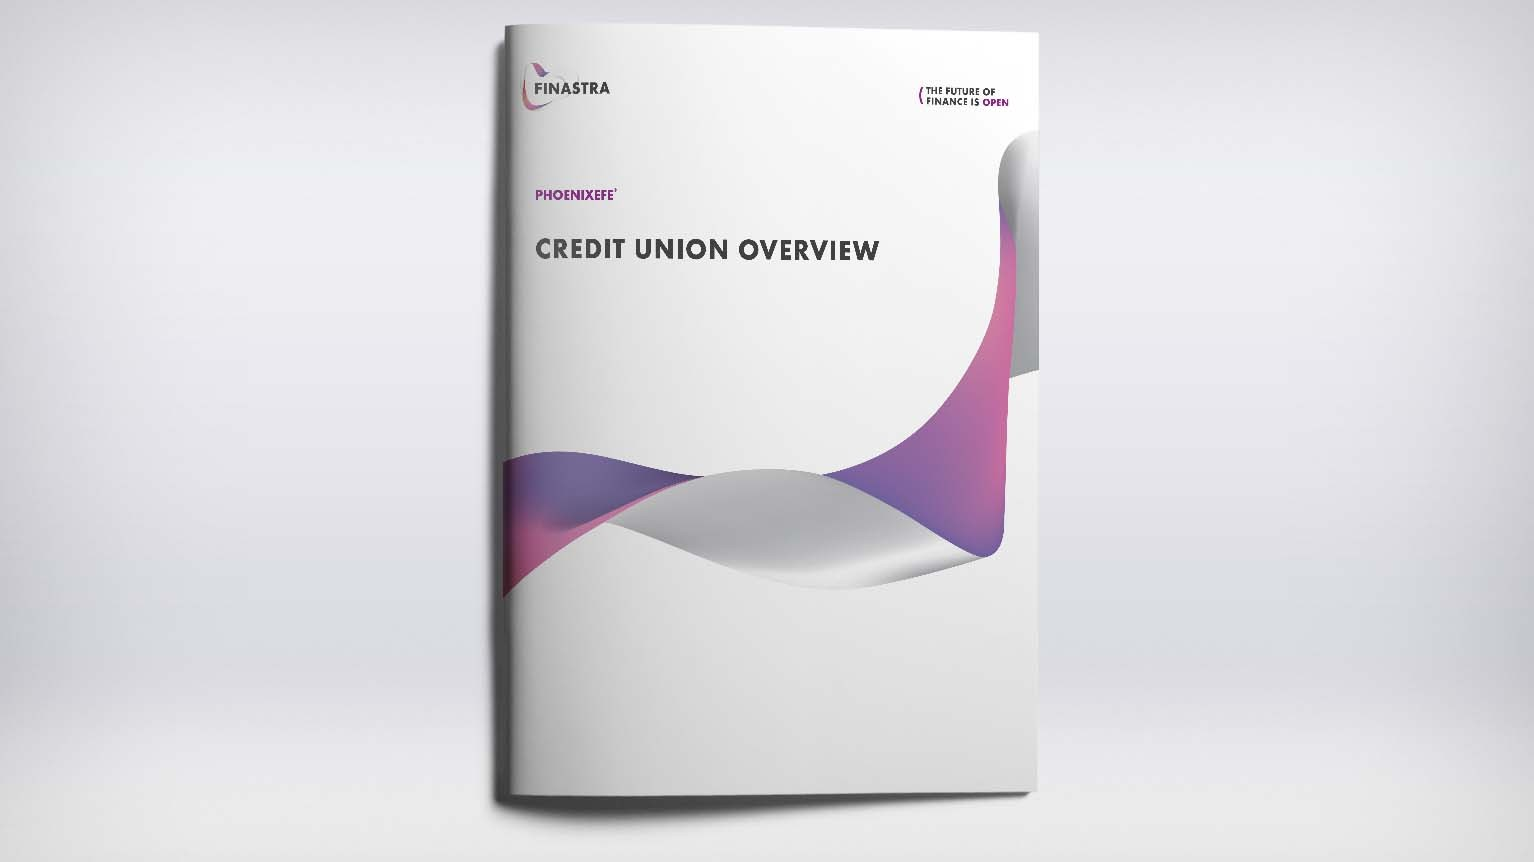 Fusion Phoenix - core solution for Credit Unions